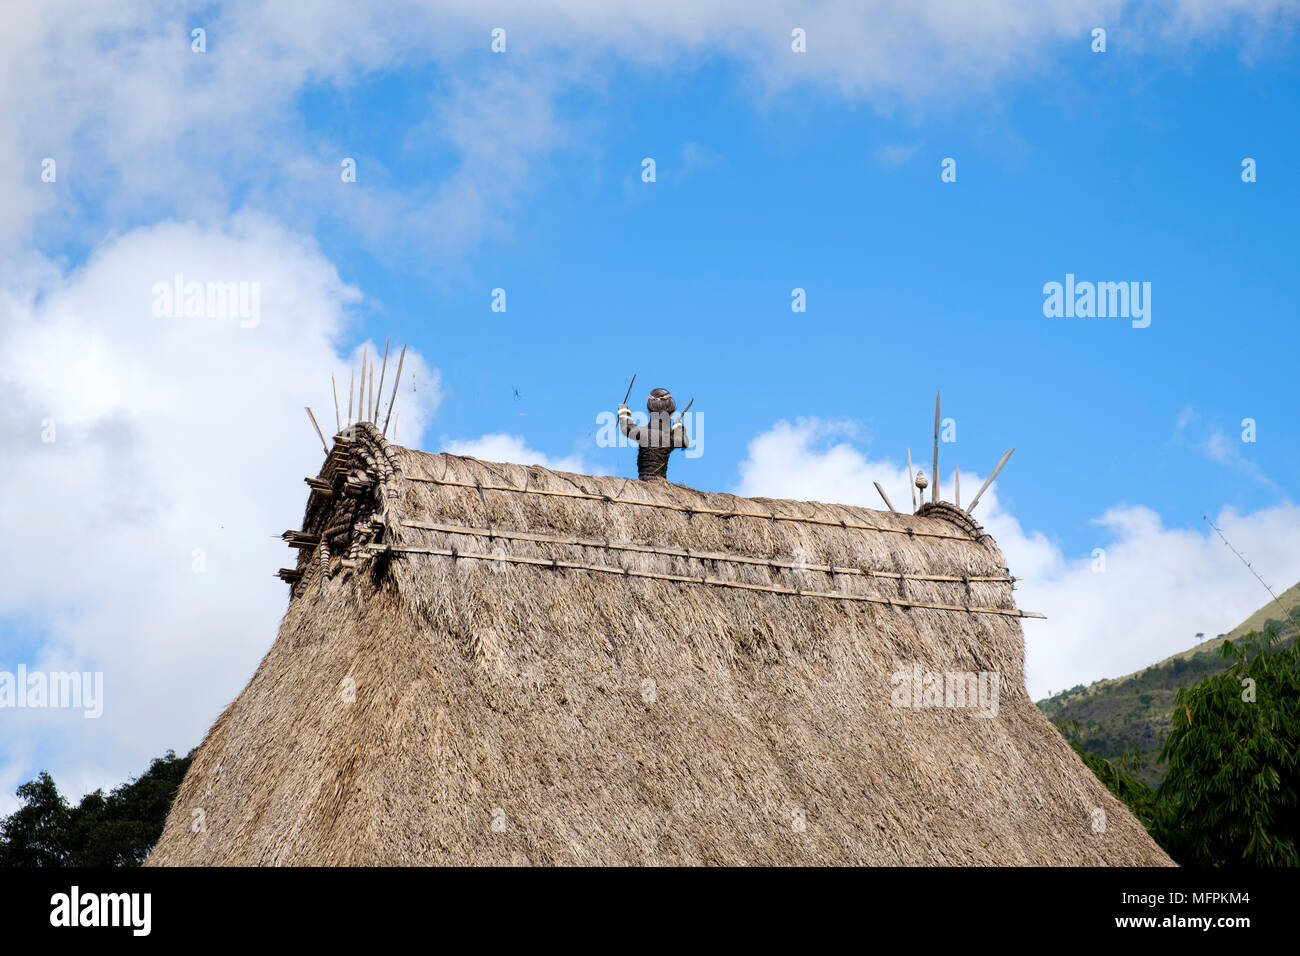 Traditional thatched roof with figures representing ancestors in Bena village, Ngada District, Flores Island (East Nusa Tenggara), Indonesia. - Stock Image